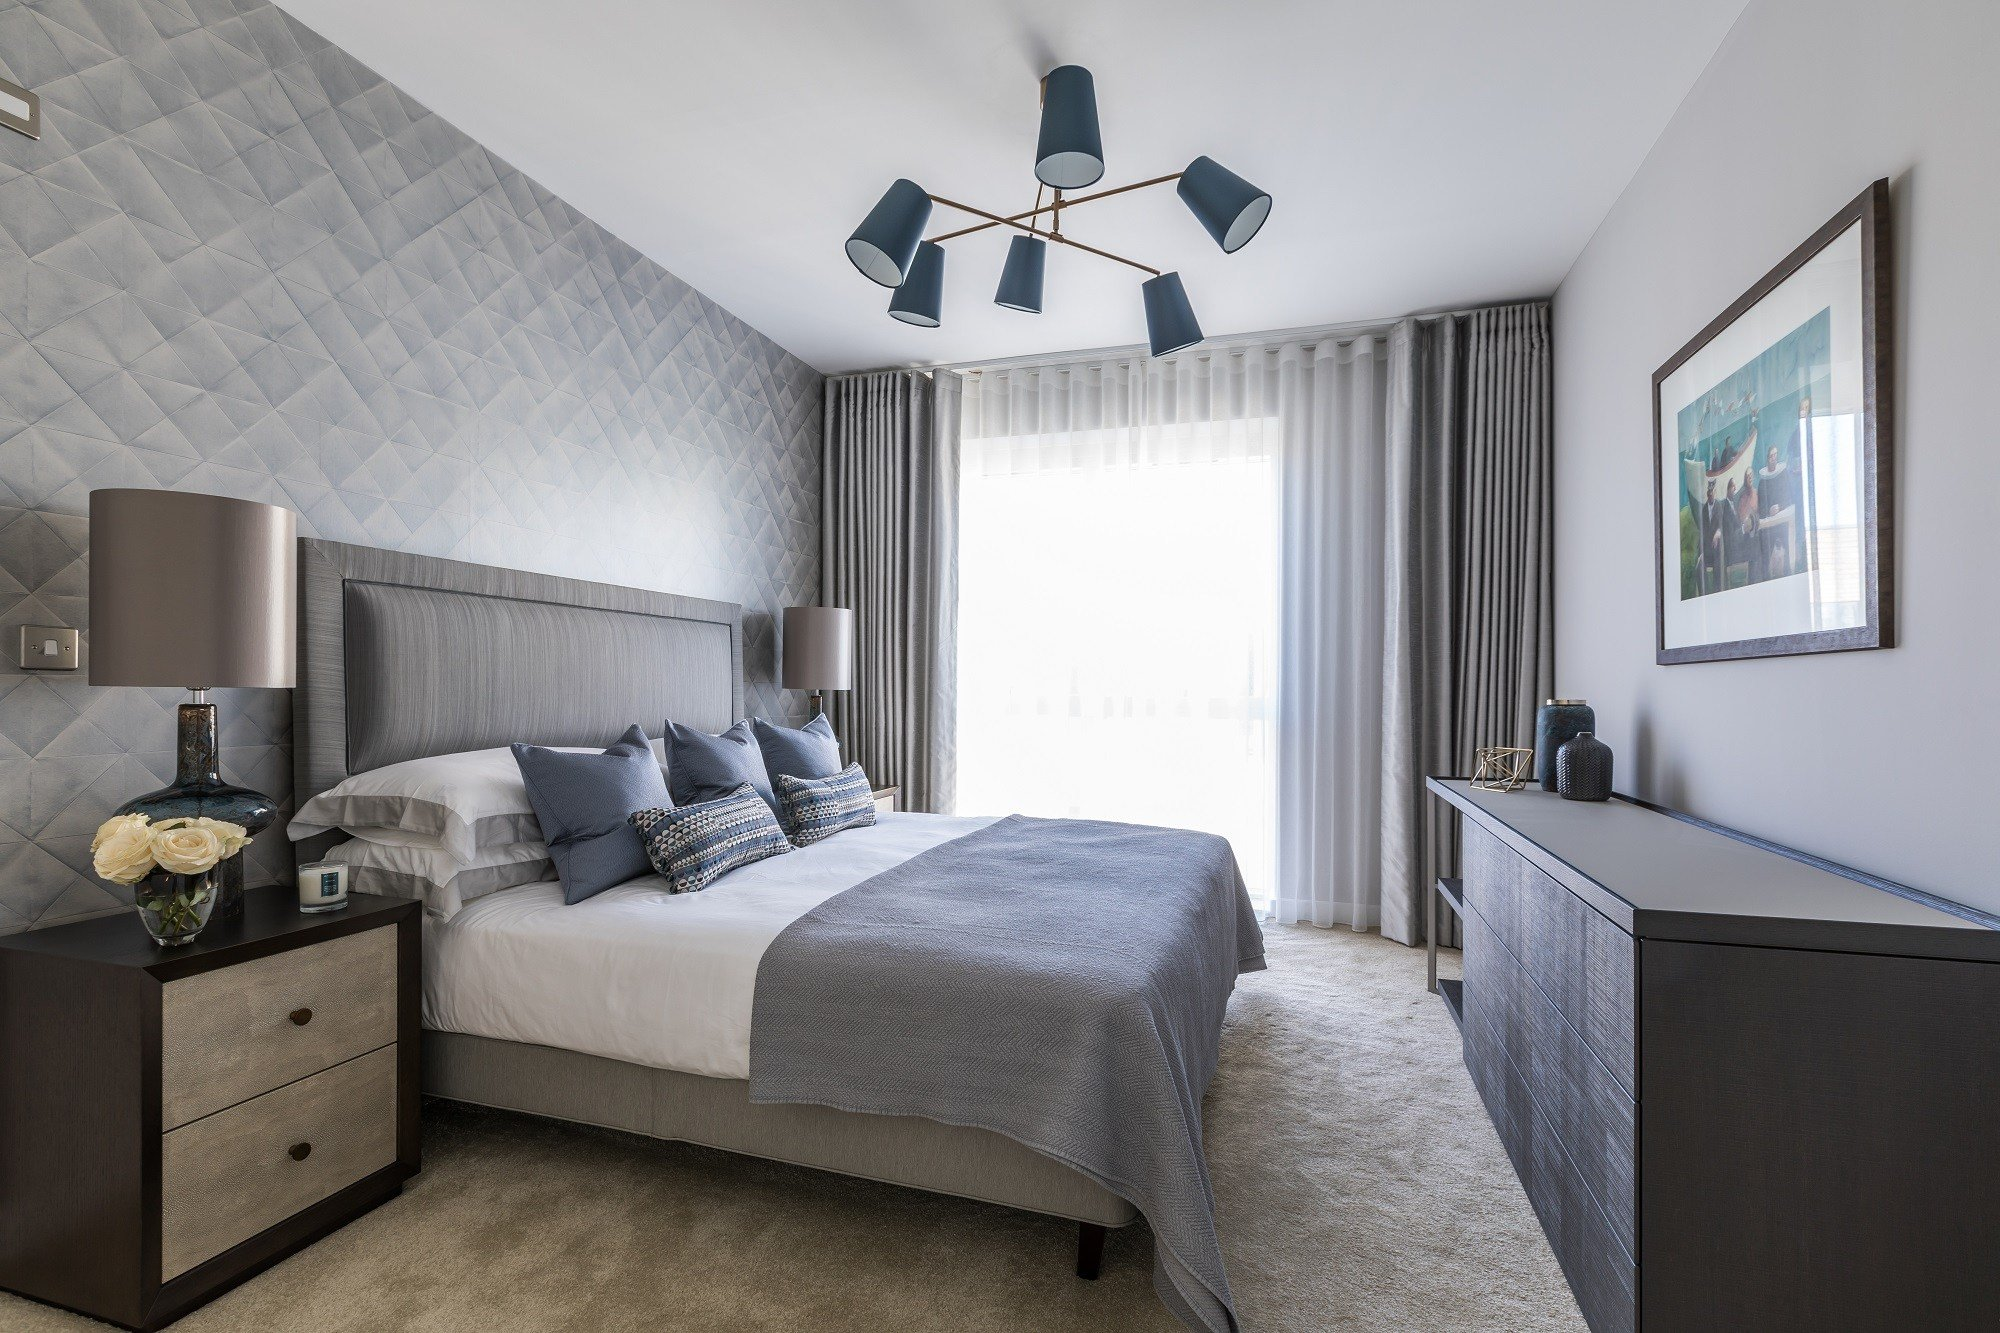 Best Bedroom Ideas 52 Modern Design Ideas For Your Bedroom With Pictures